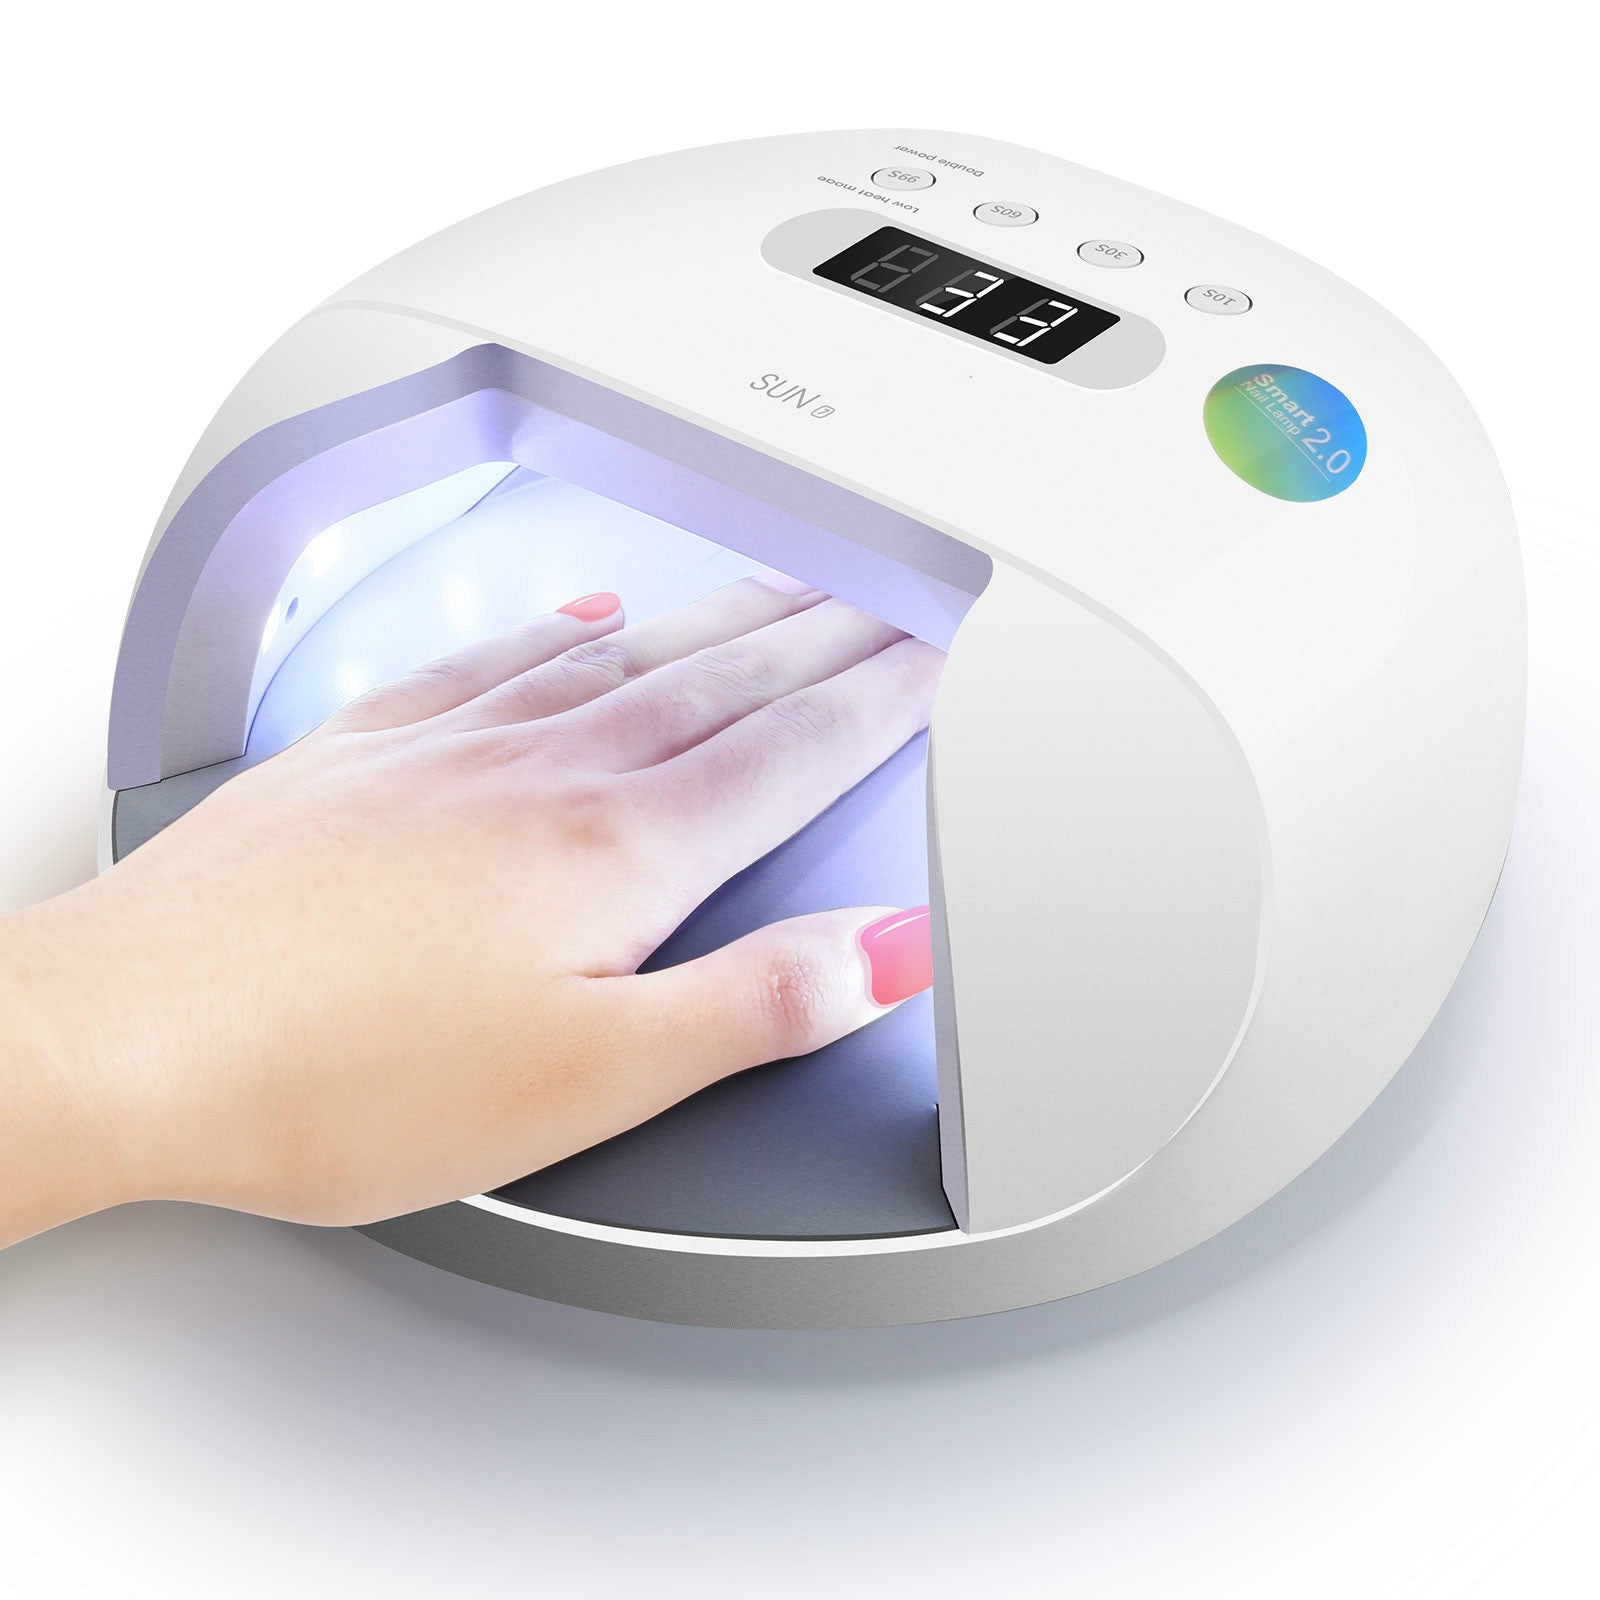 SUN7 48W UV Led Nail Lamp UV Light for Gel Nails with Double Power Design,4 Timer Setting, Lcd Display,Painless Curing,Over-Temperature Protection